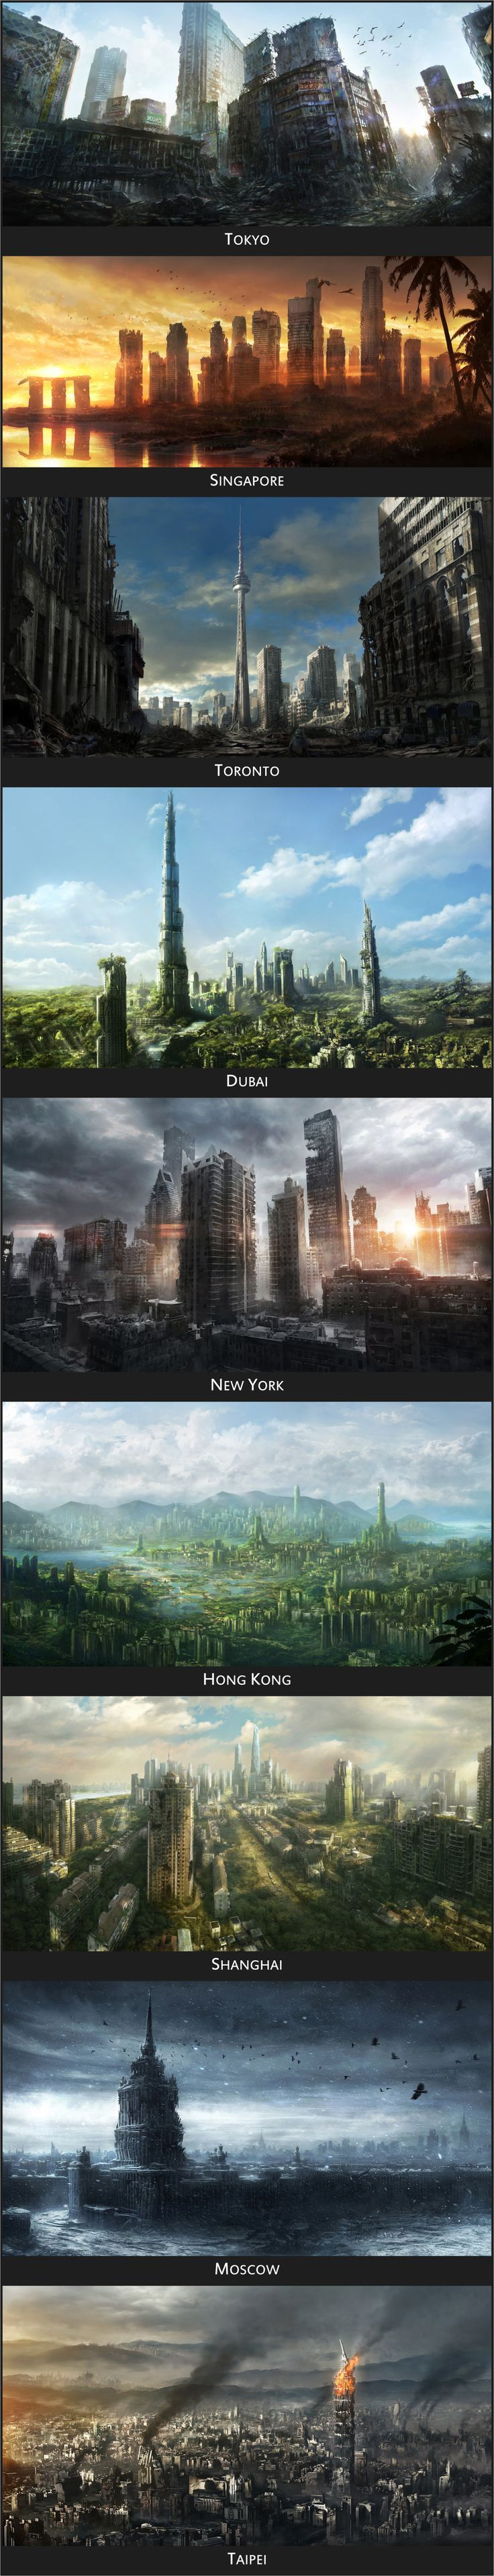 Post Apocalypse / Dystopia - What would the world's cities look like after the apocalypse?